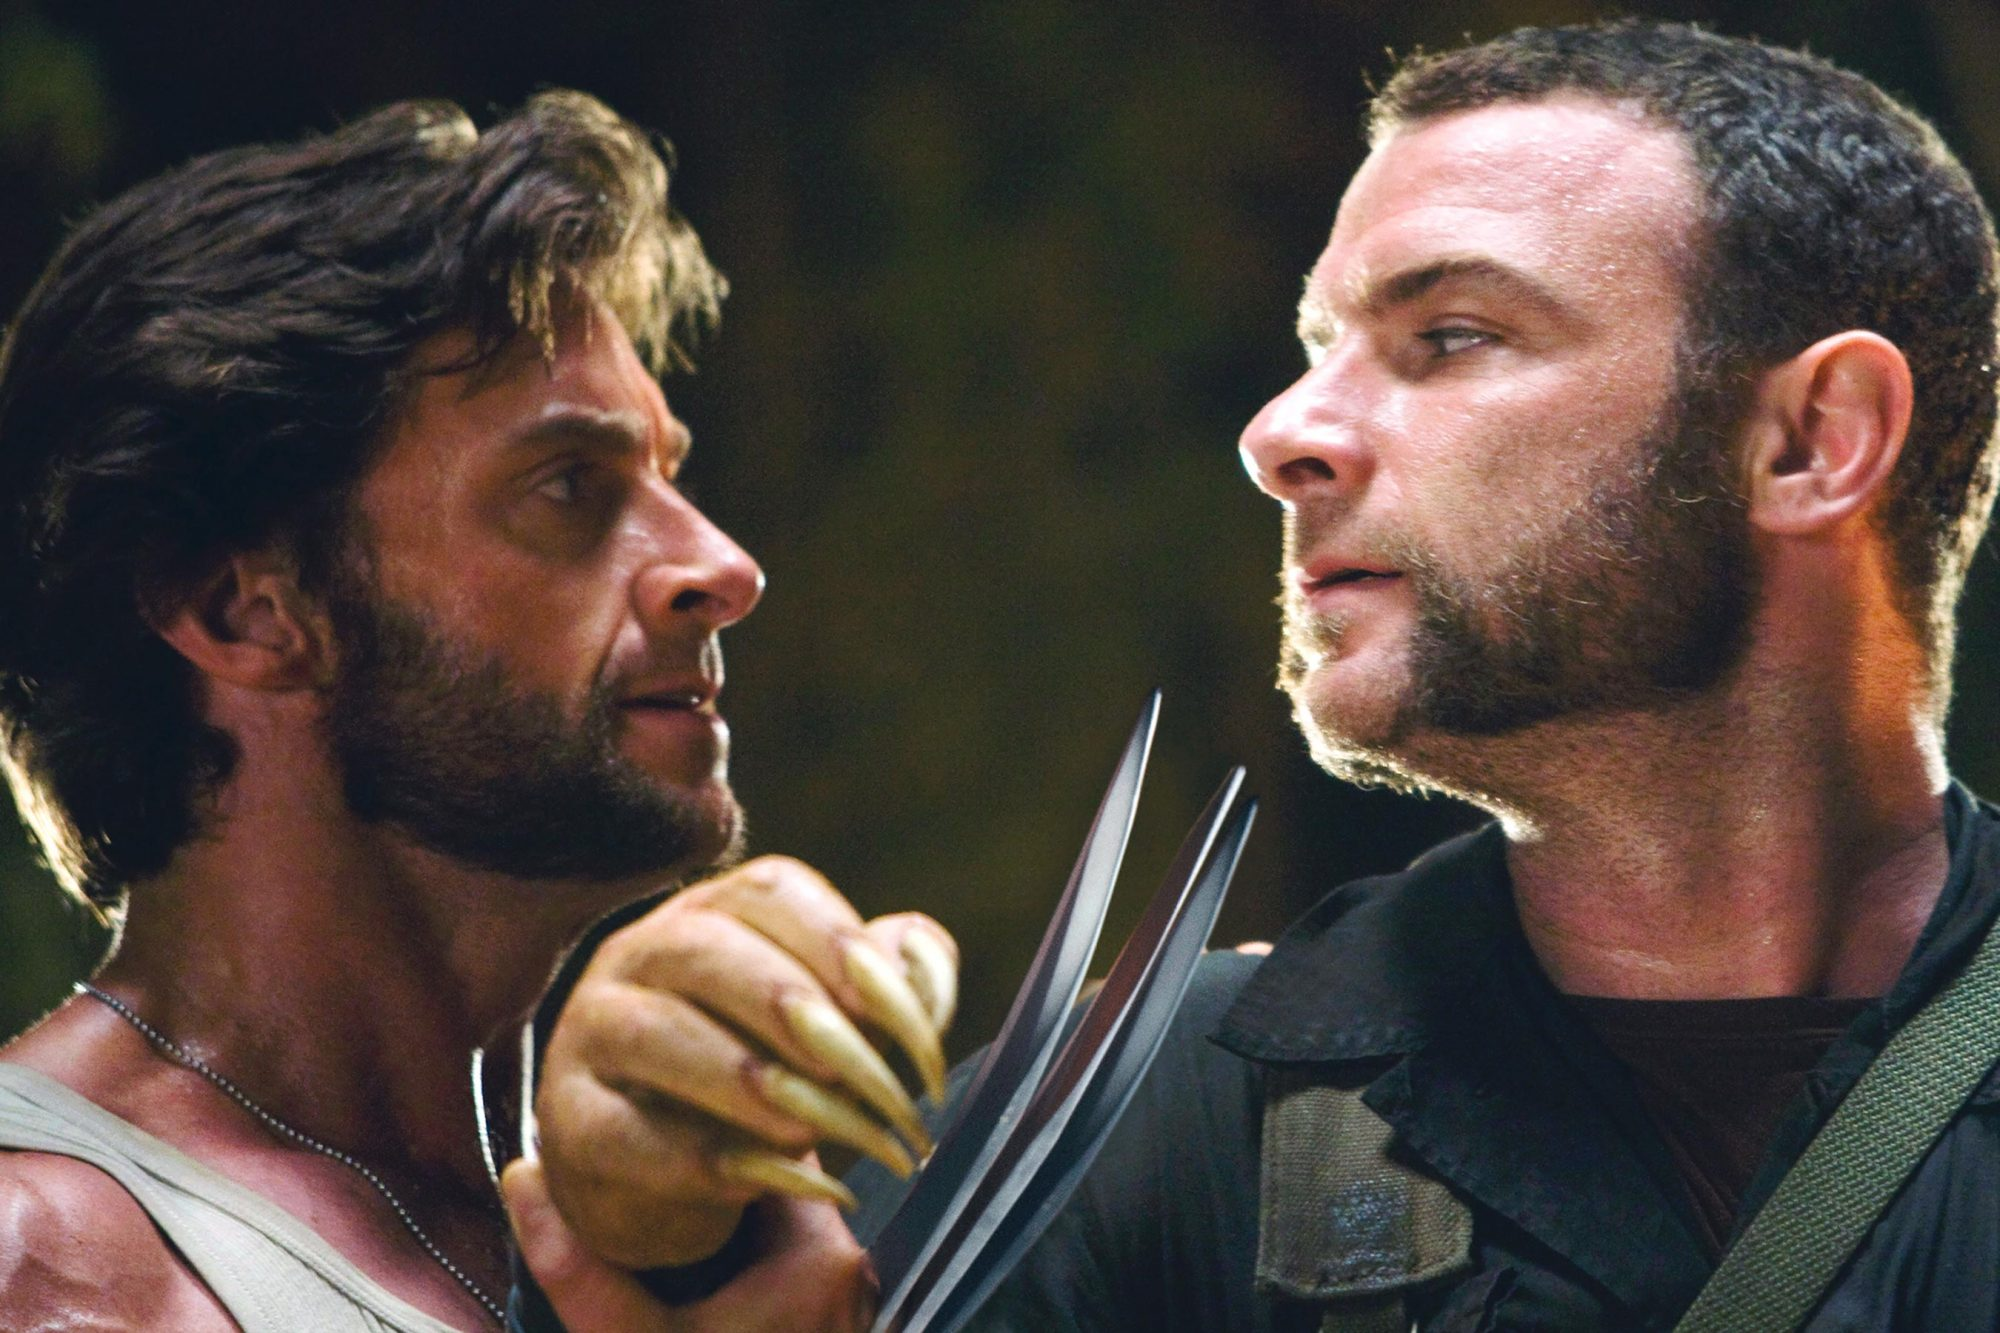 X-MEN Origins: Wolverine (2009)Hugh Jackman (L) and Liev Schreiber